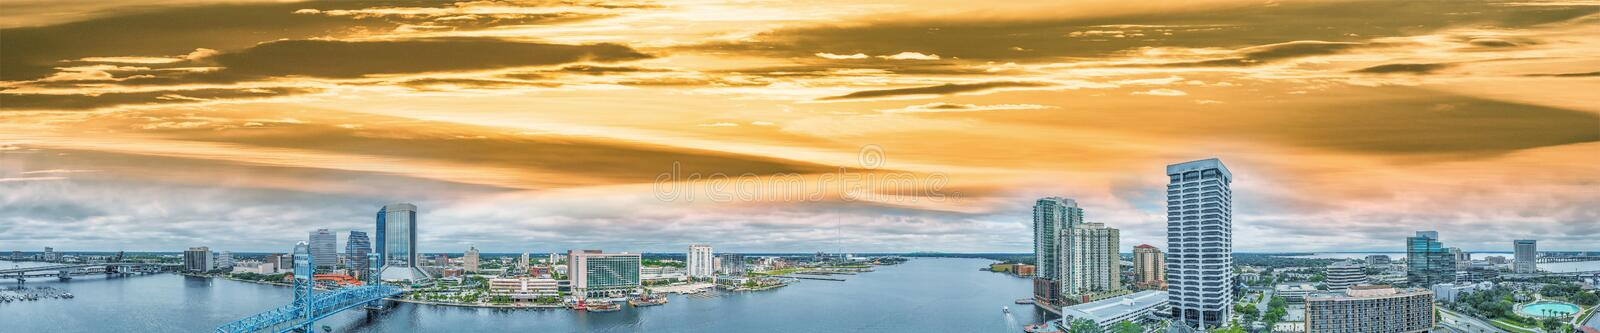 Jacksonville aerial panoramic view at dusk, Florida royalty free stock photo